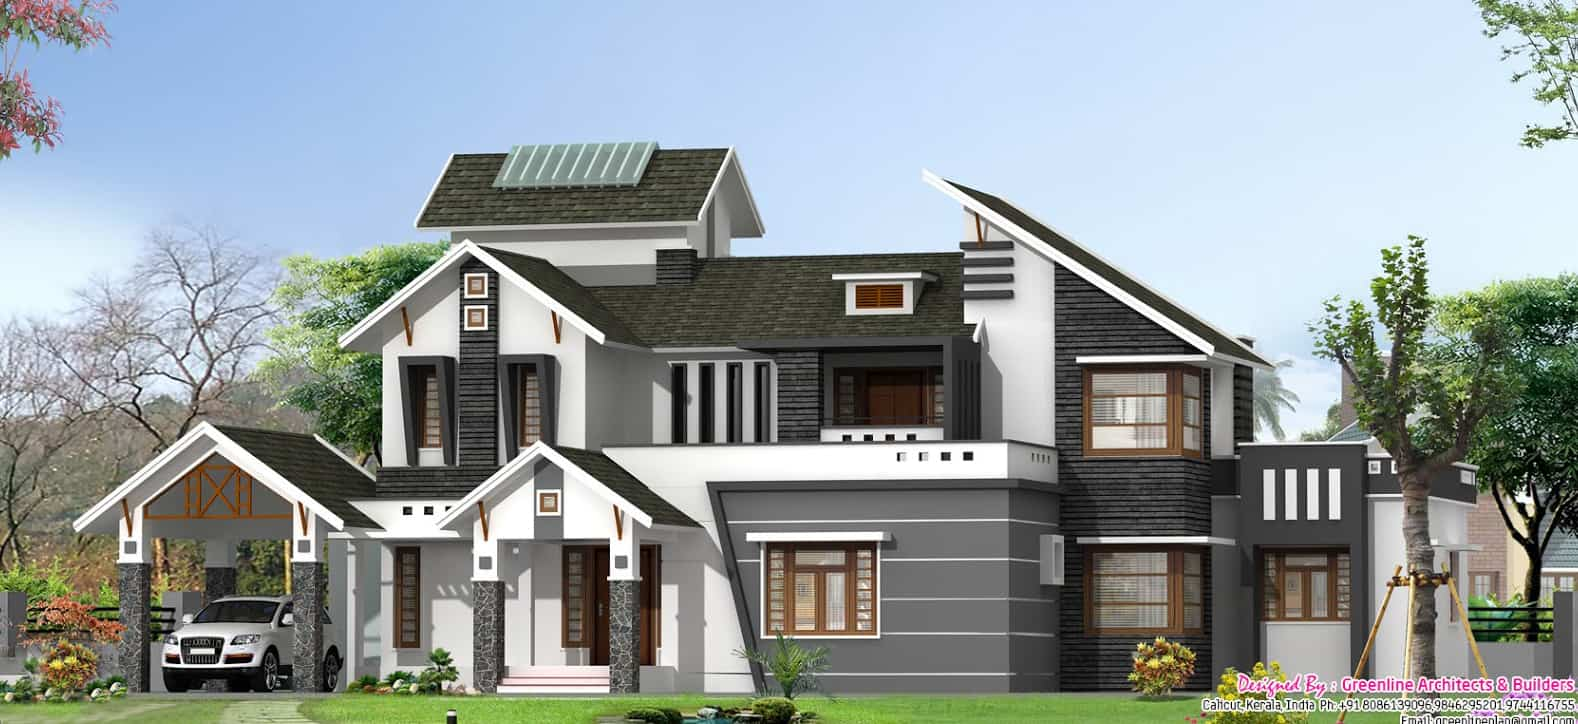 Unique house designs keralahouseplanner for New house design